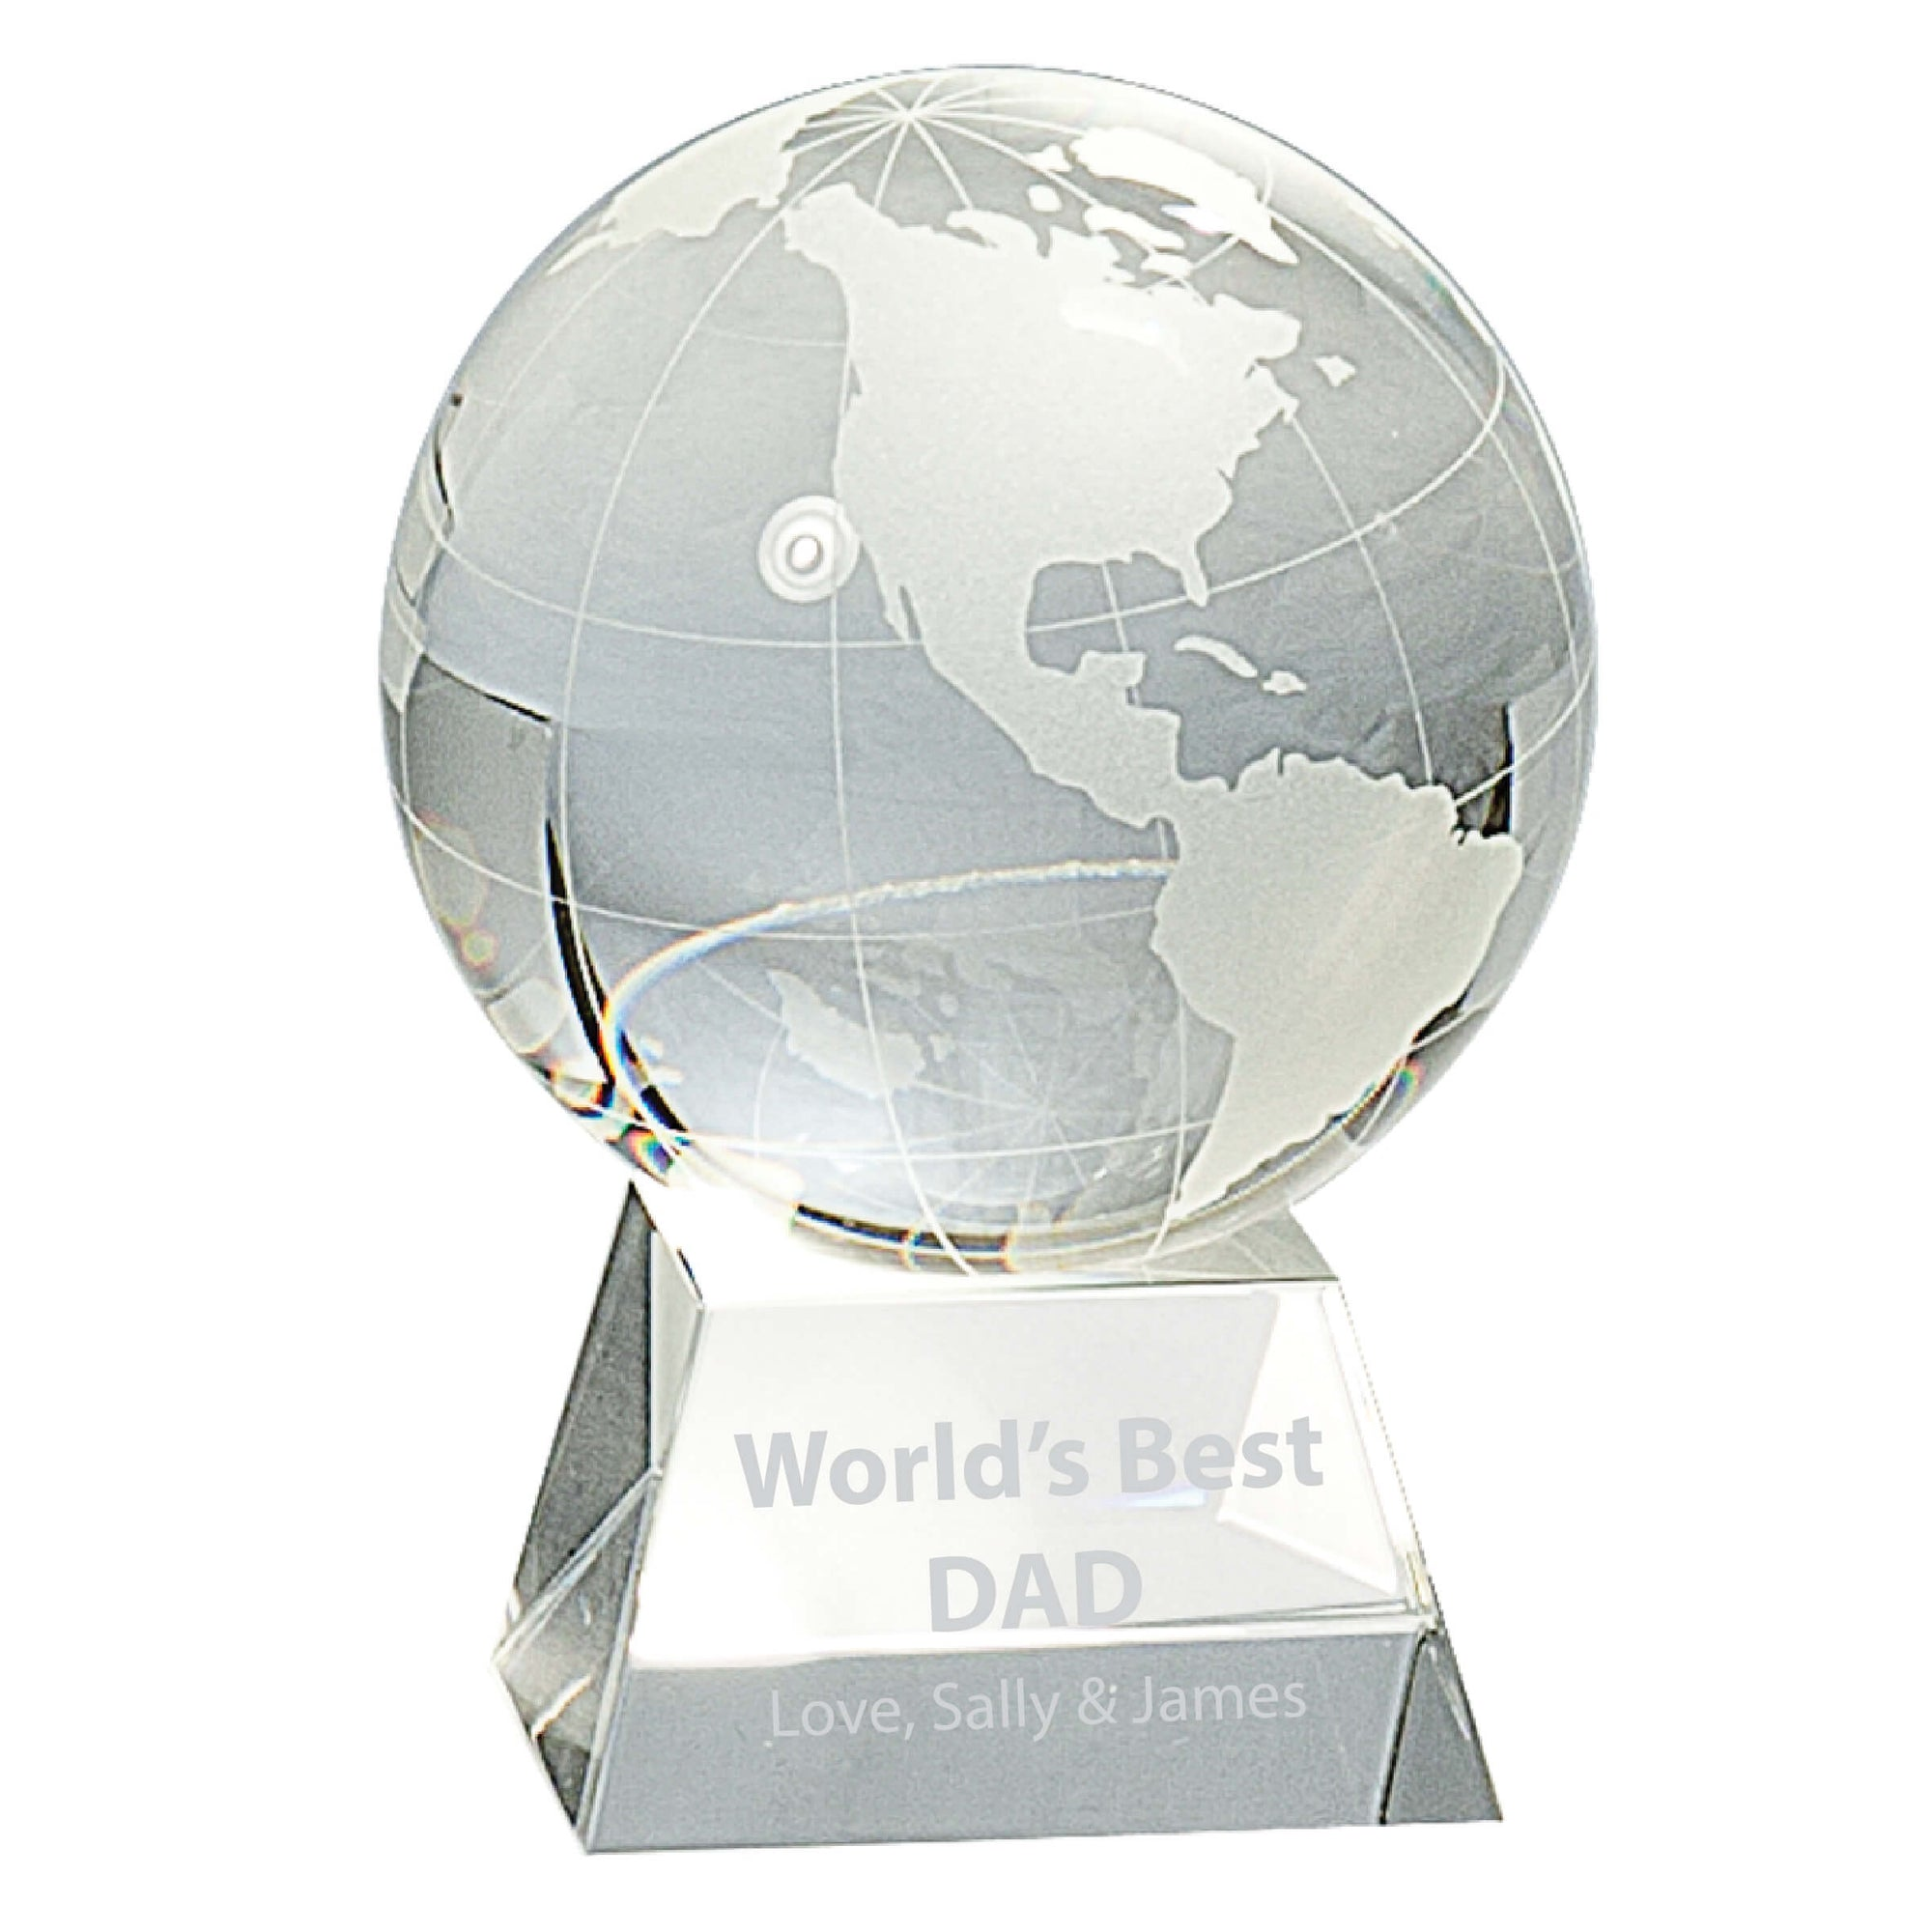 World's Best Dad Crystal Globe